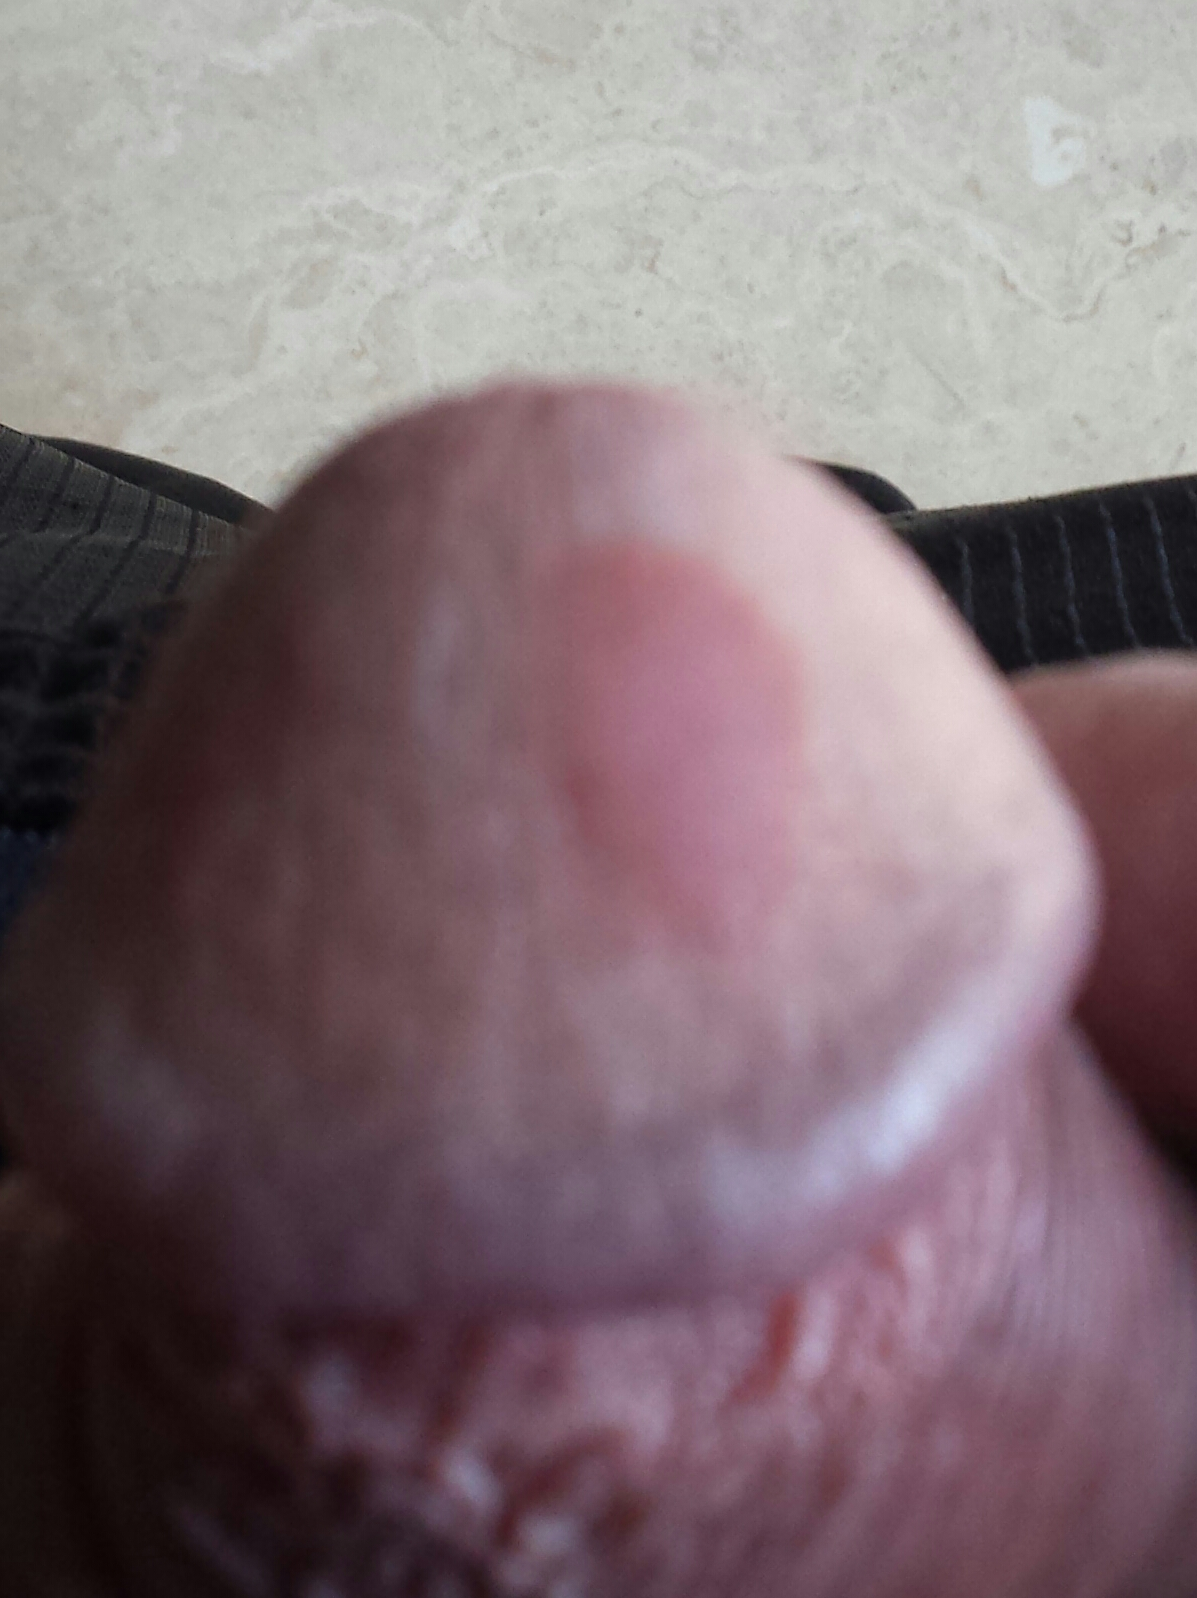 What Is This Rash or Bump on My Penis?